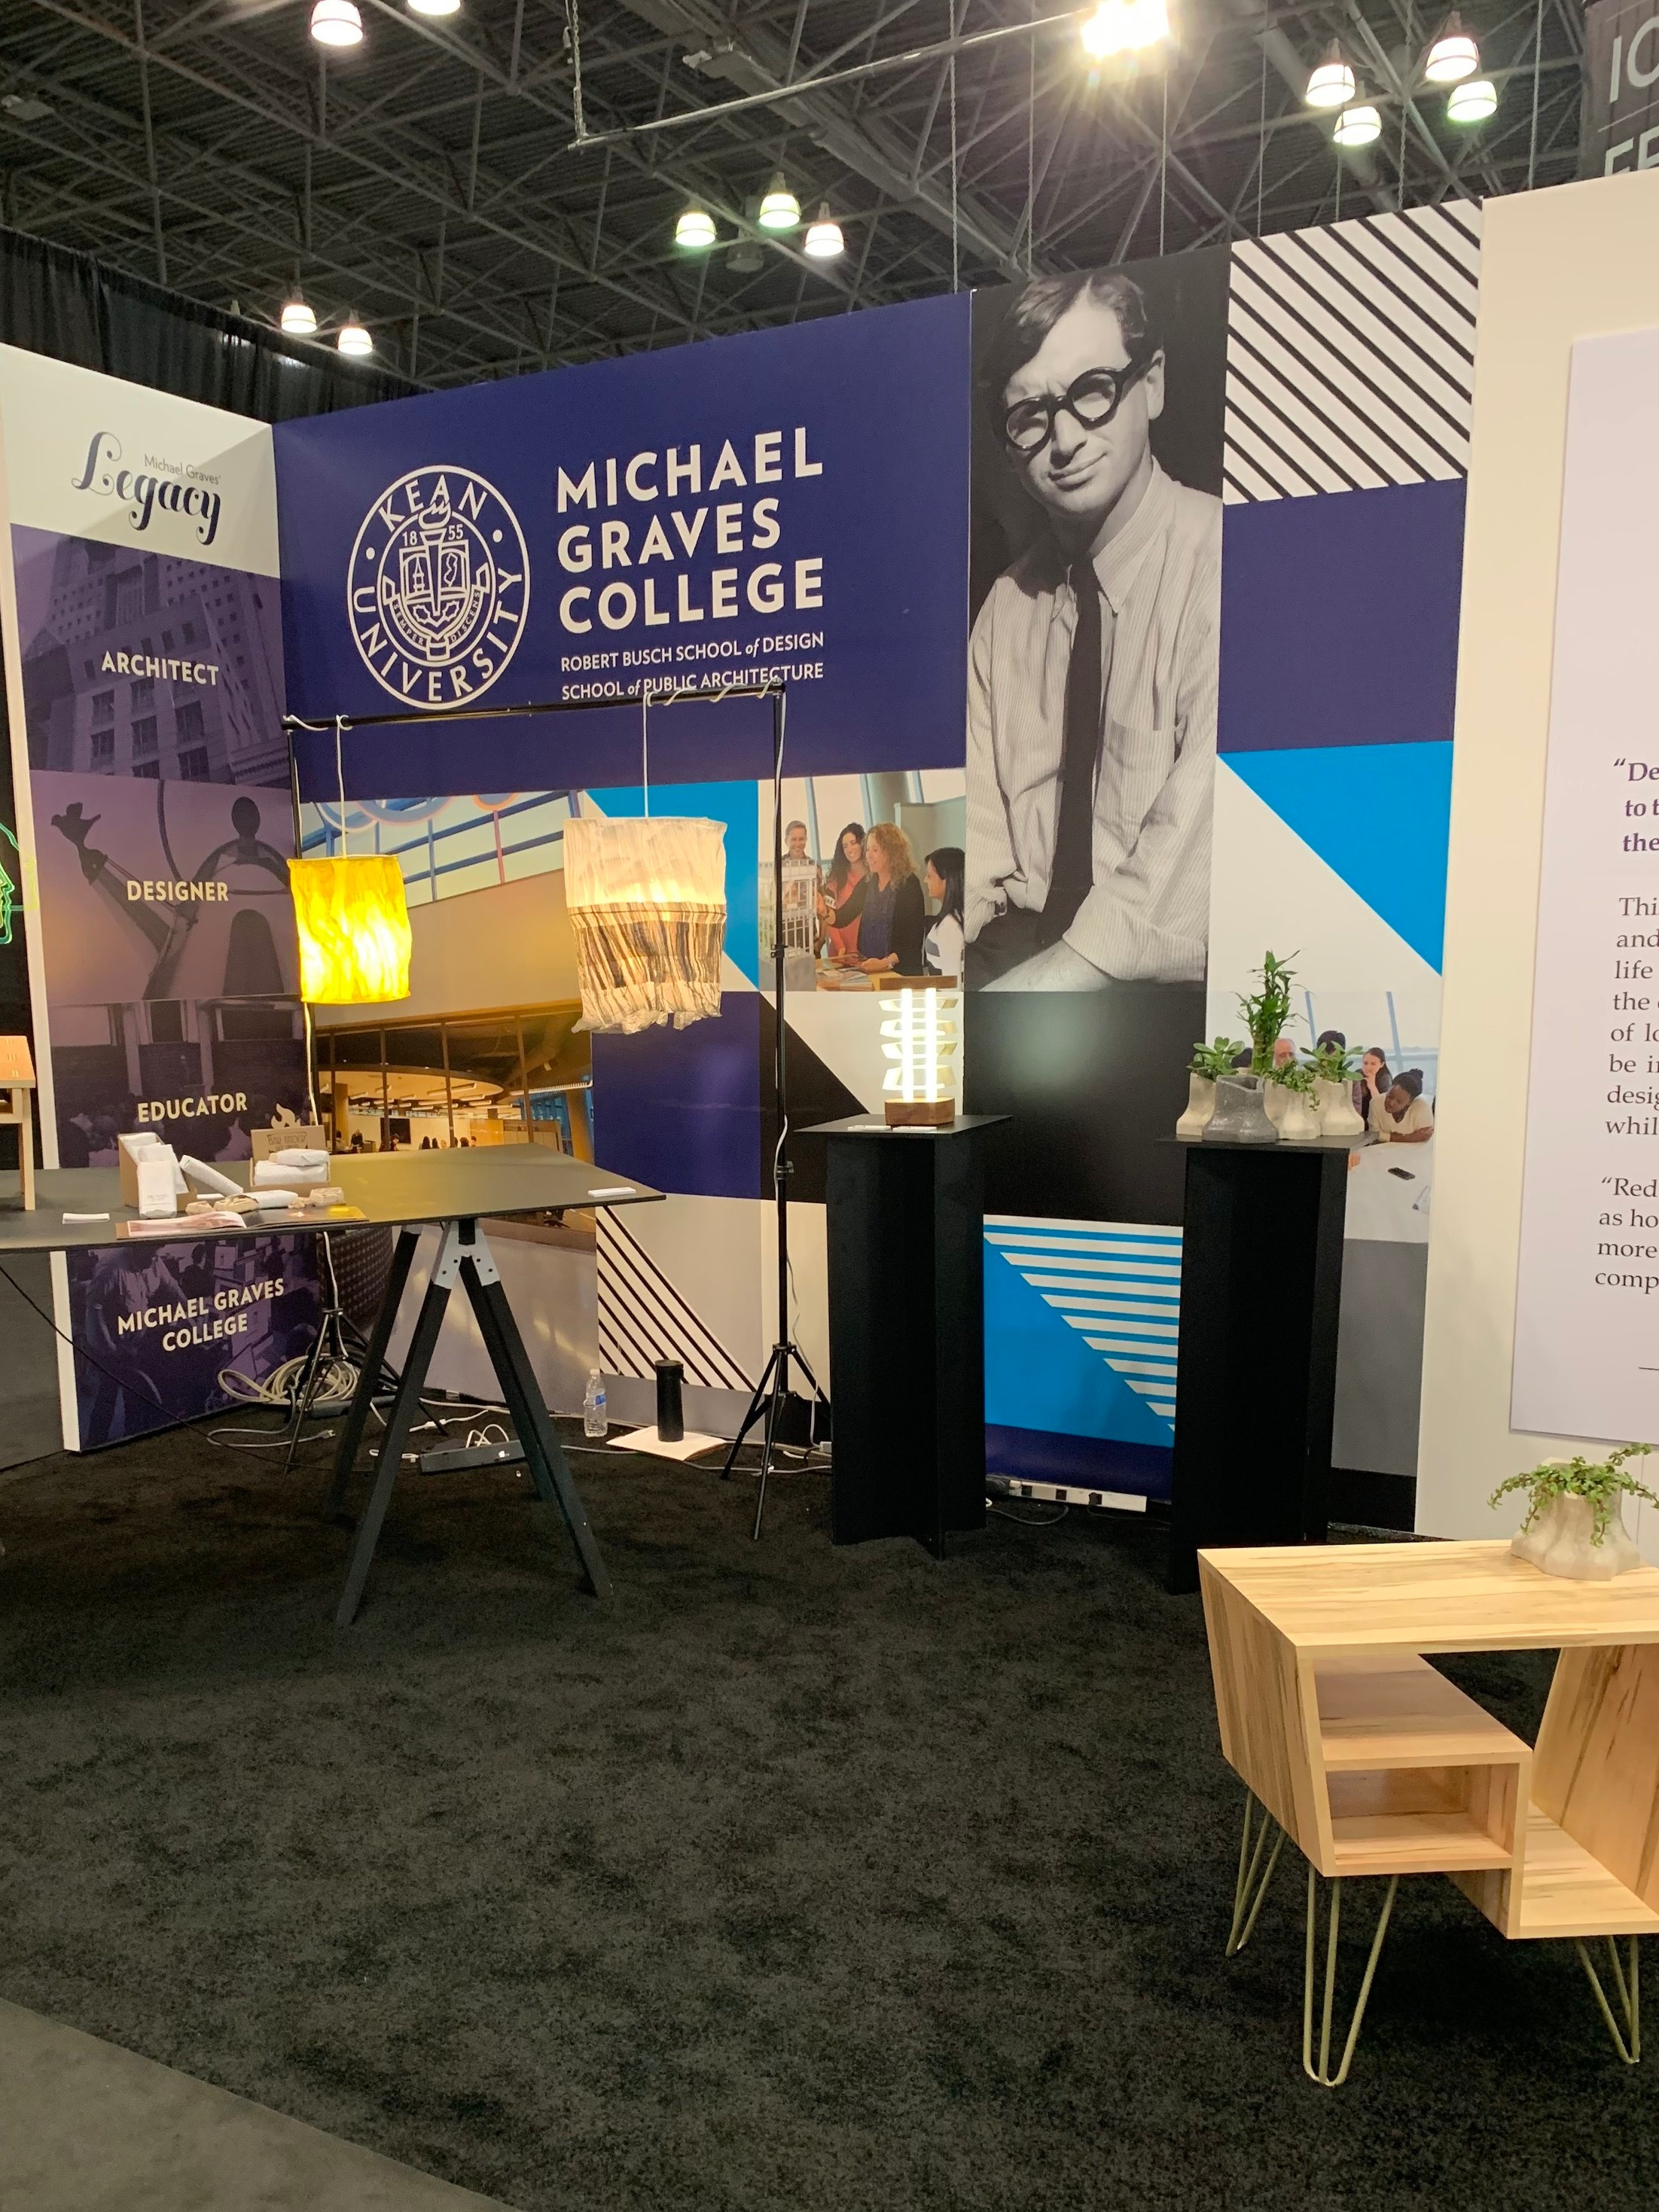 Michael Graves College at Kean University